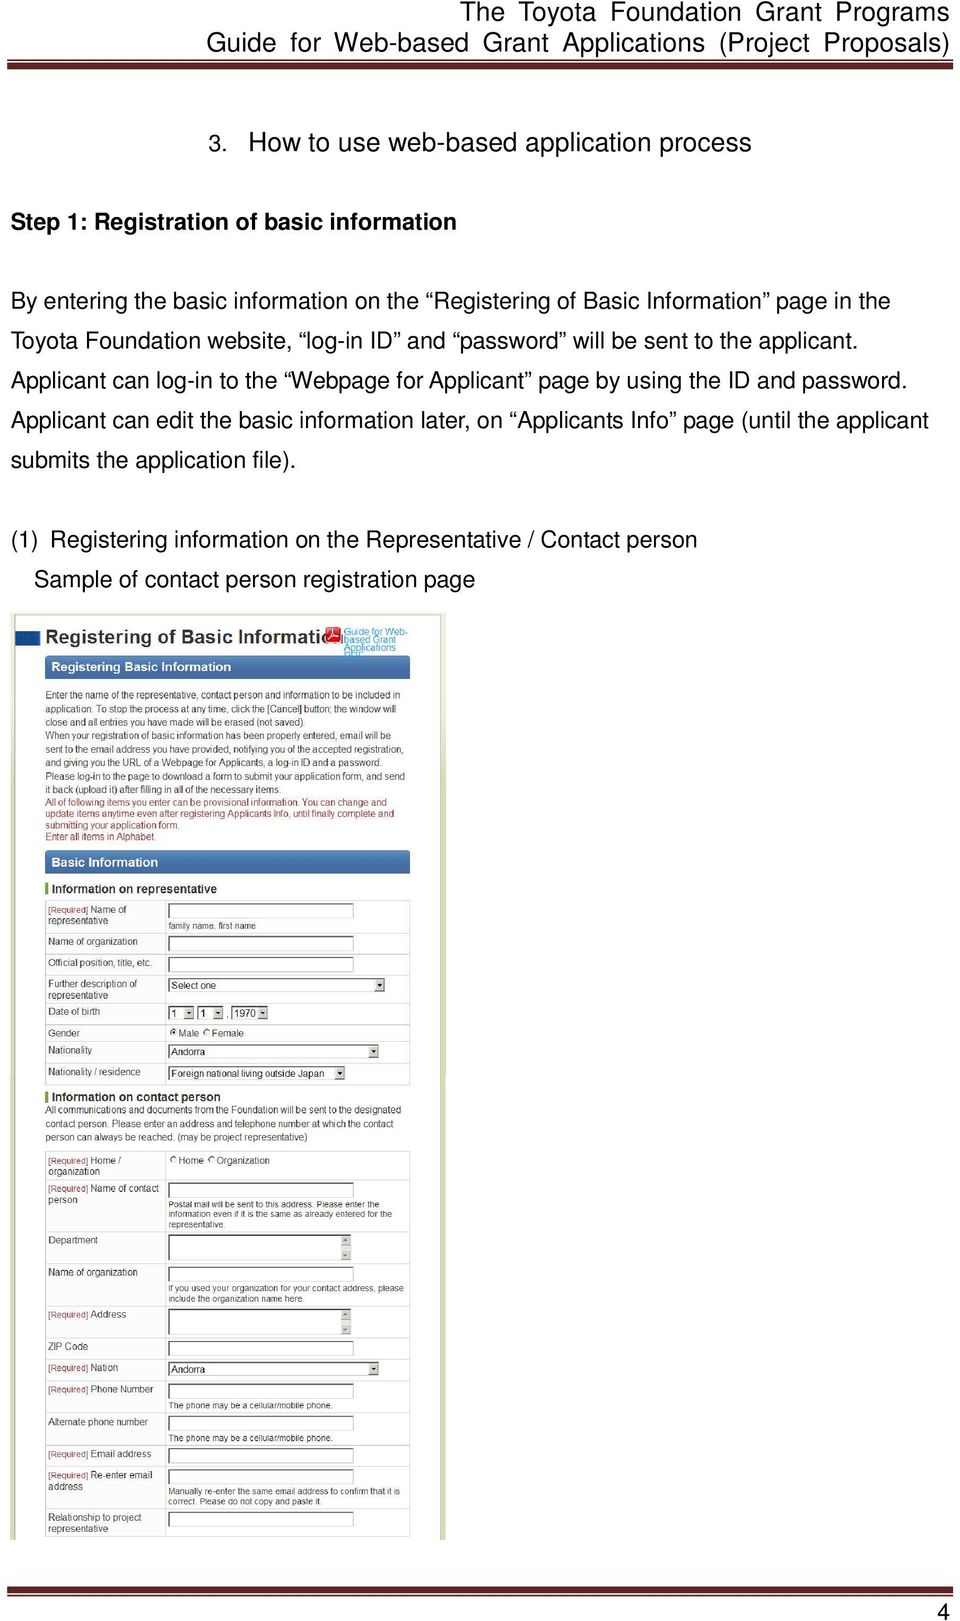 Applicant can log-in to the Webpage for Applicant page by using the ID and password.